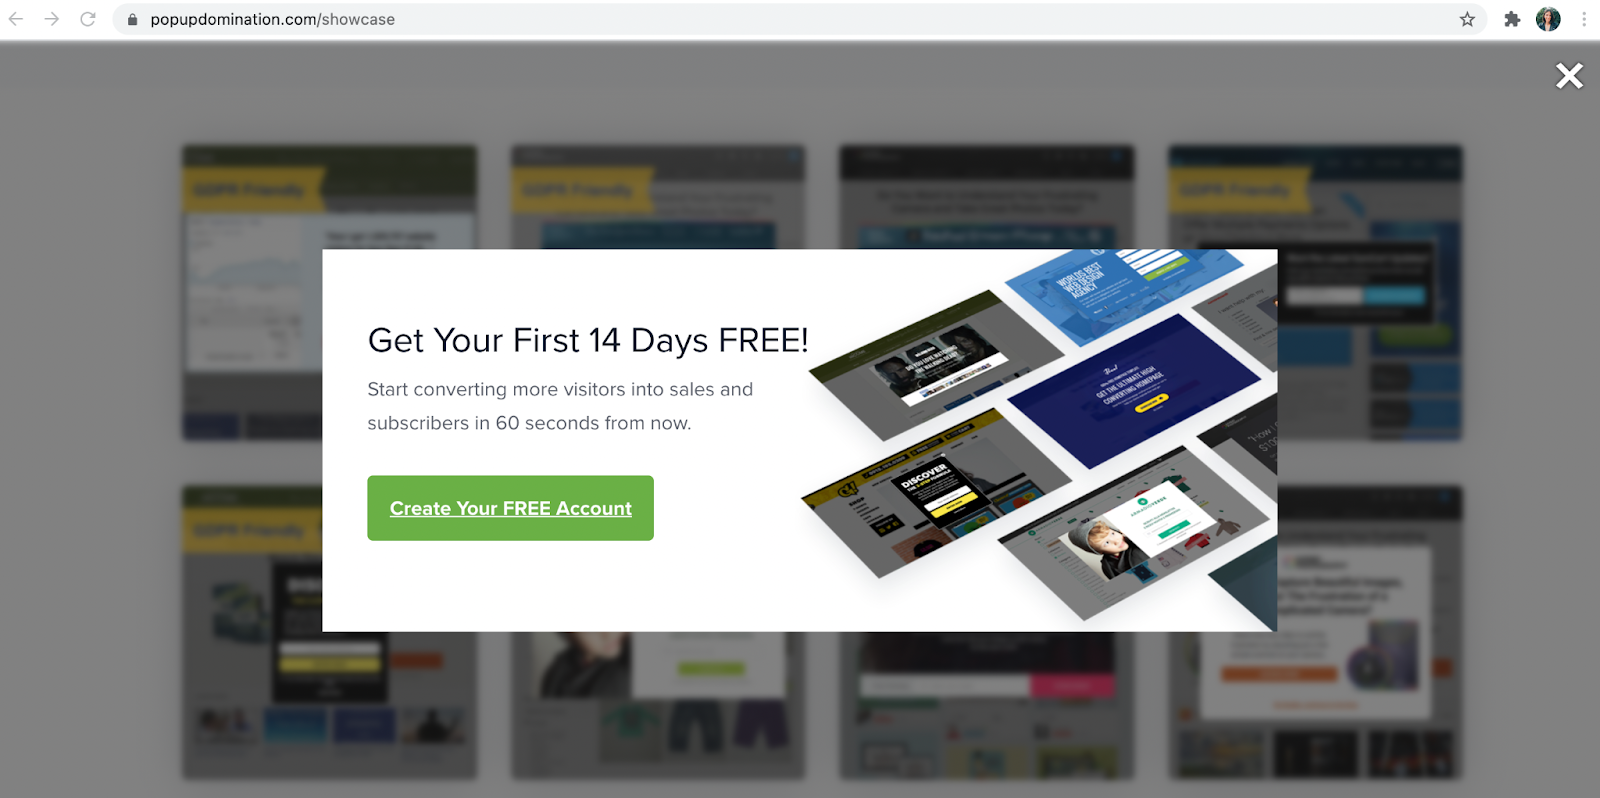 Using this in your popup creates urgency, but in a classy way.